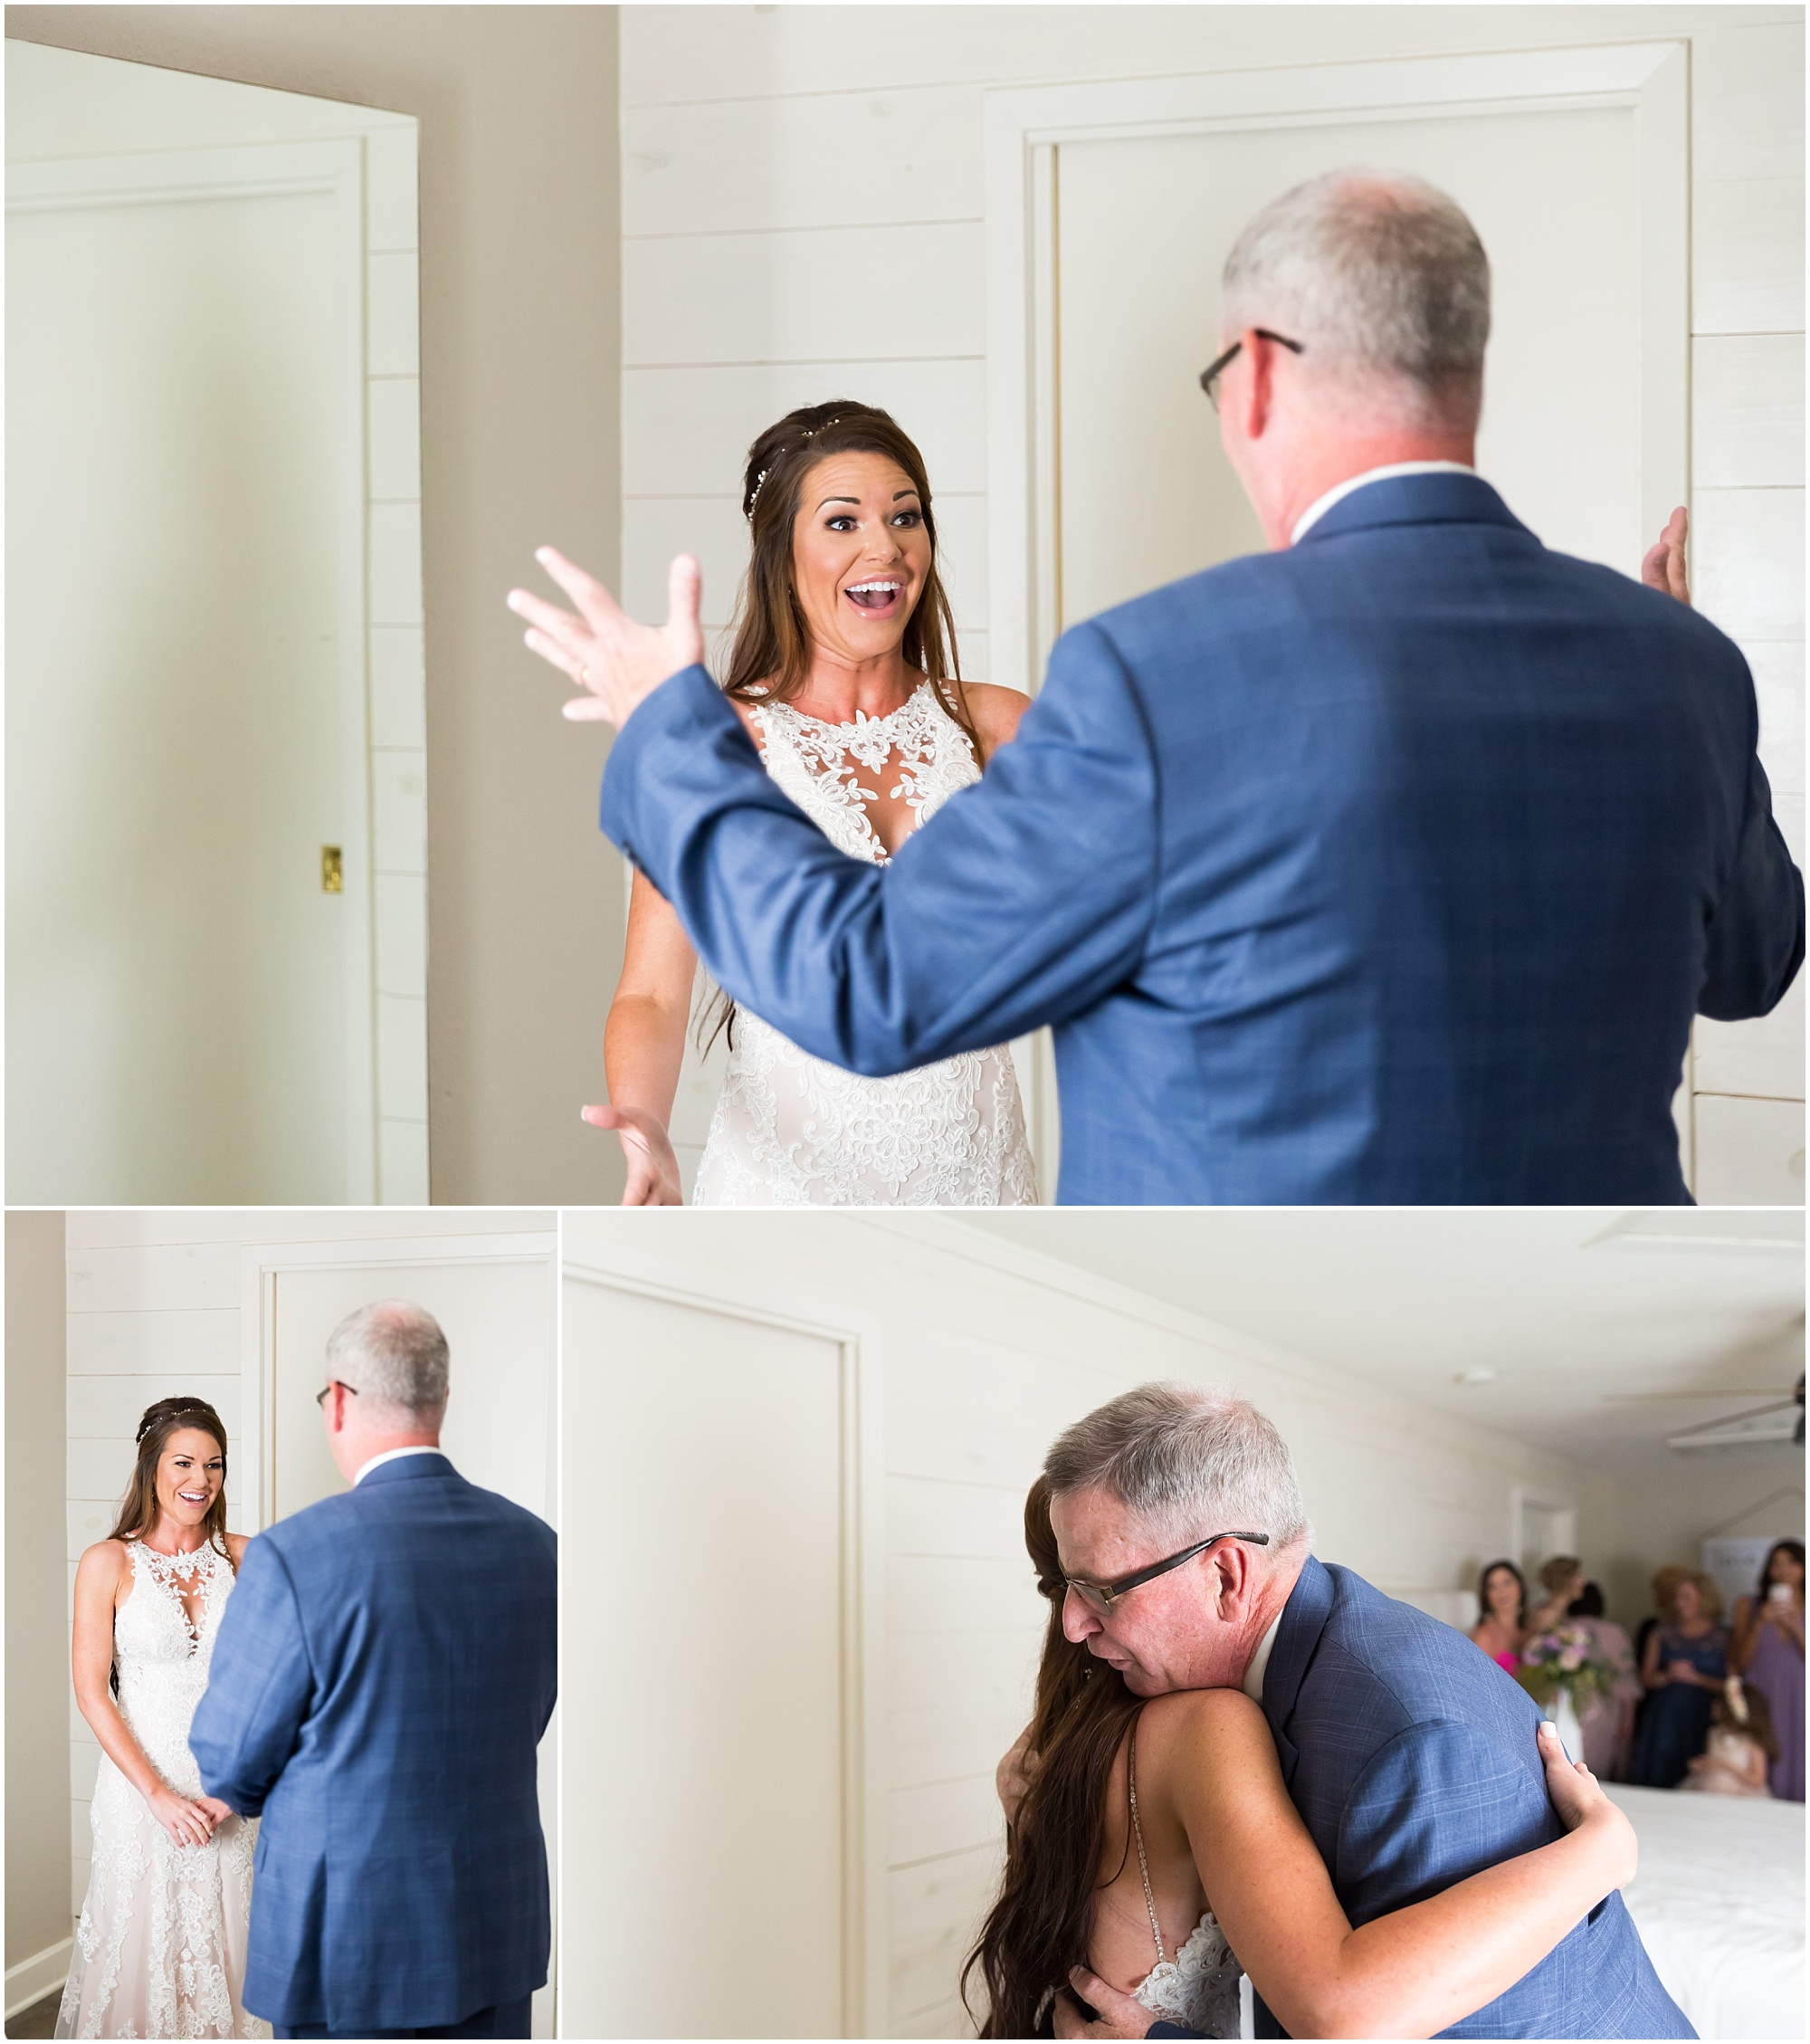 A bride hugs her father before her wedding ceremony at Gathering Oaks Retreat in Waco, Texas | Jason & Melaina Photography | www.jasonandmelaina.com